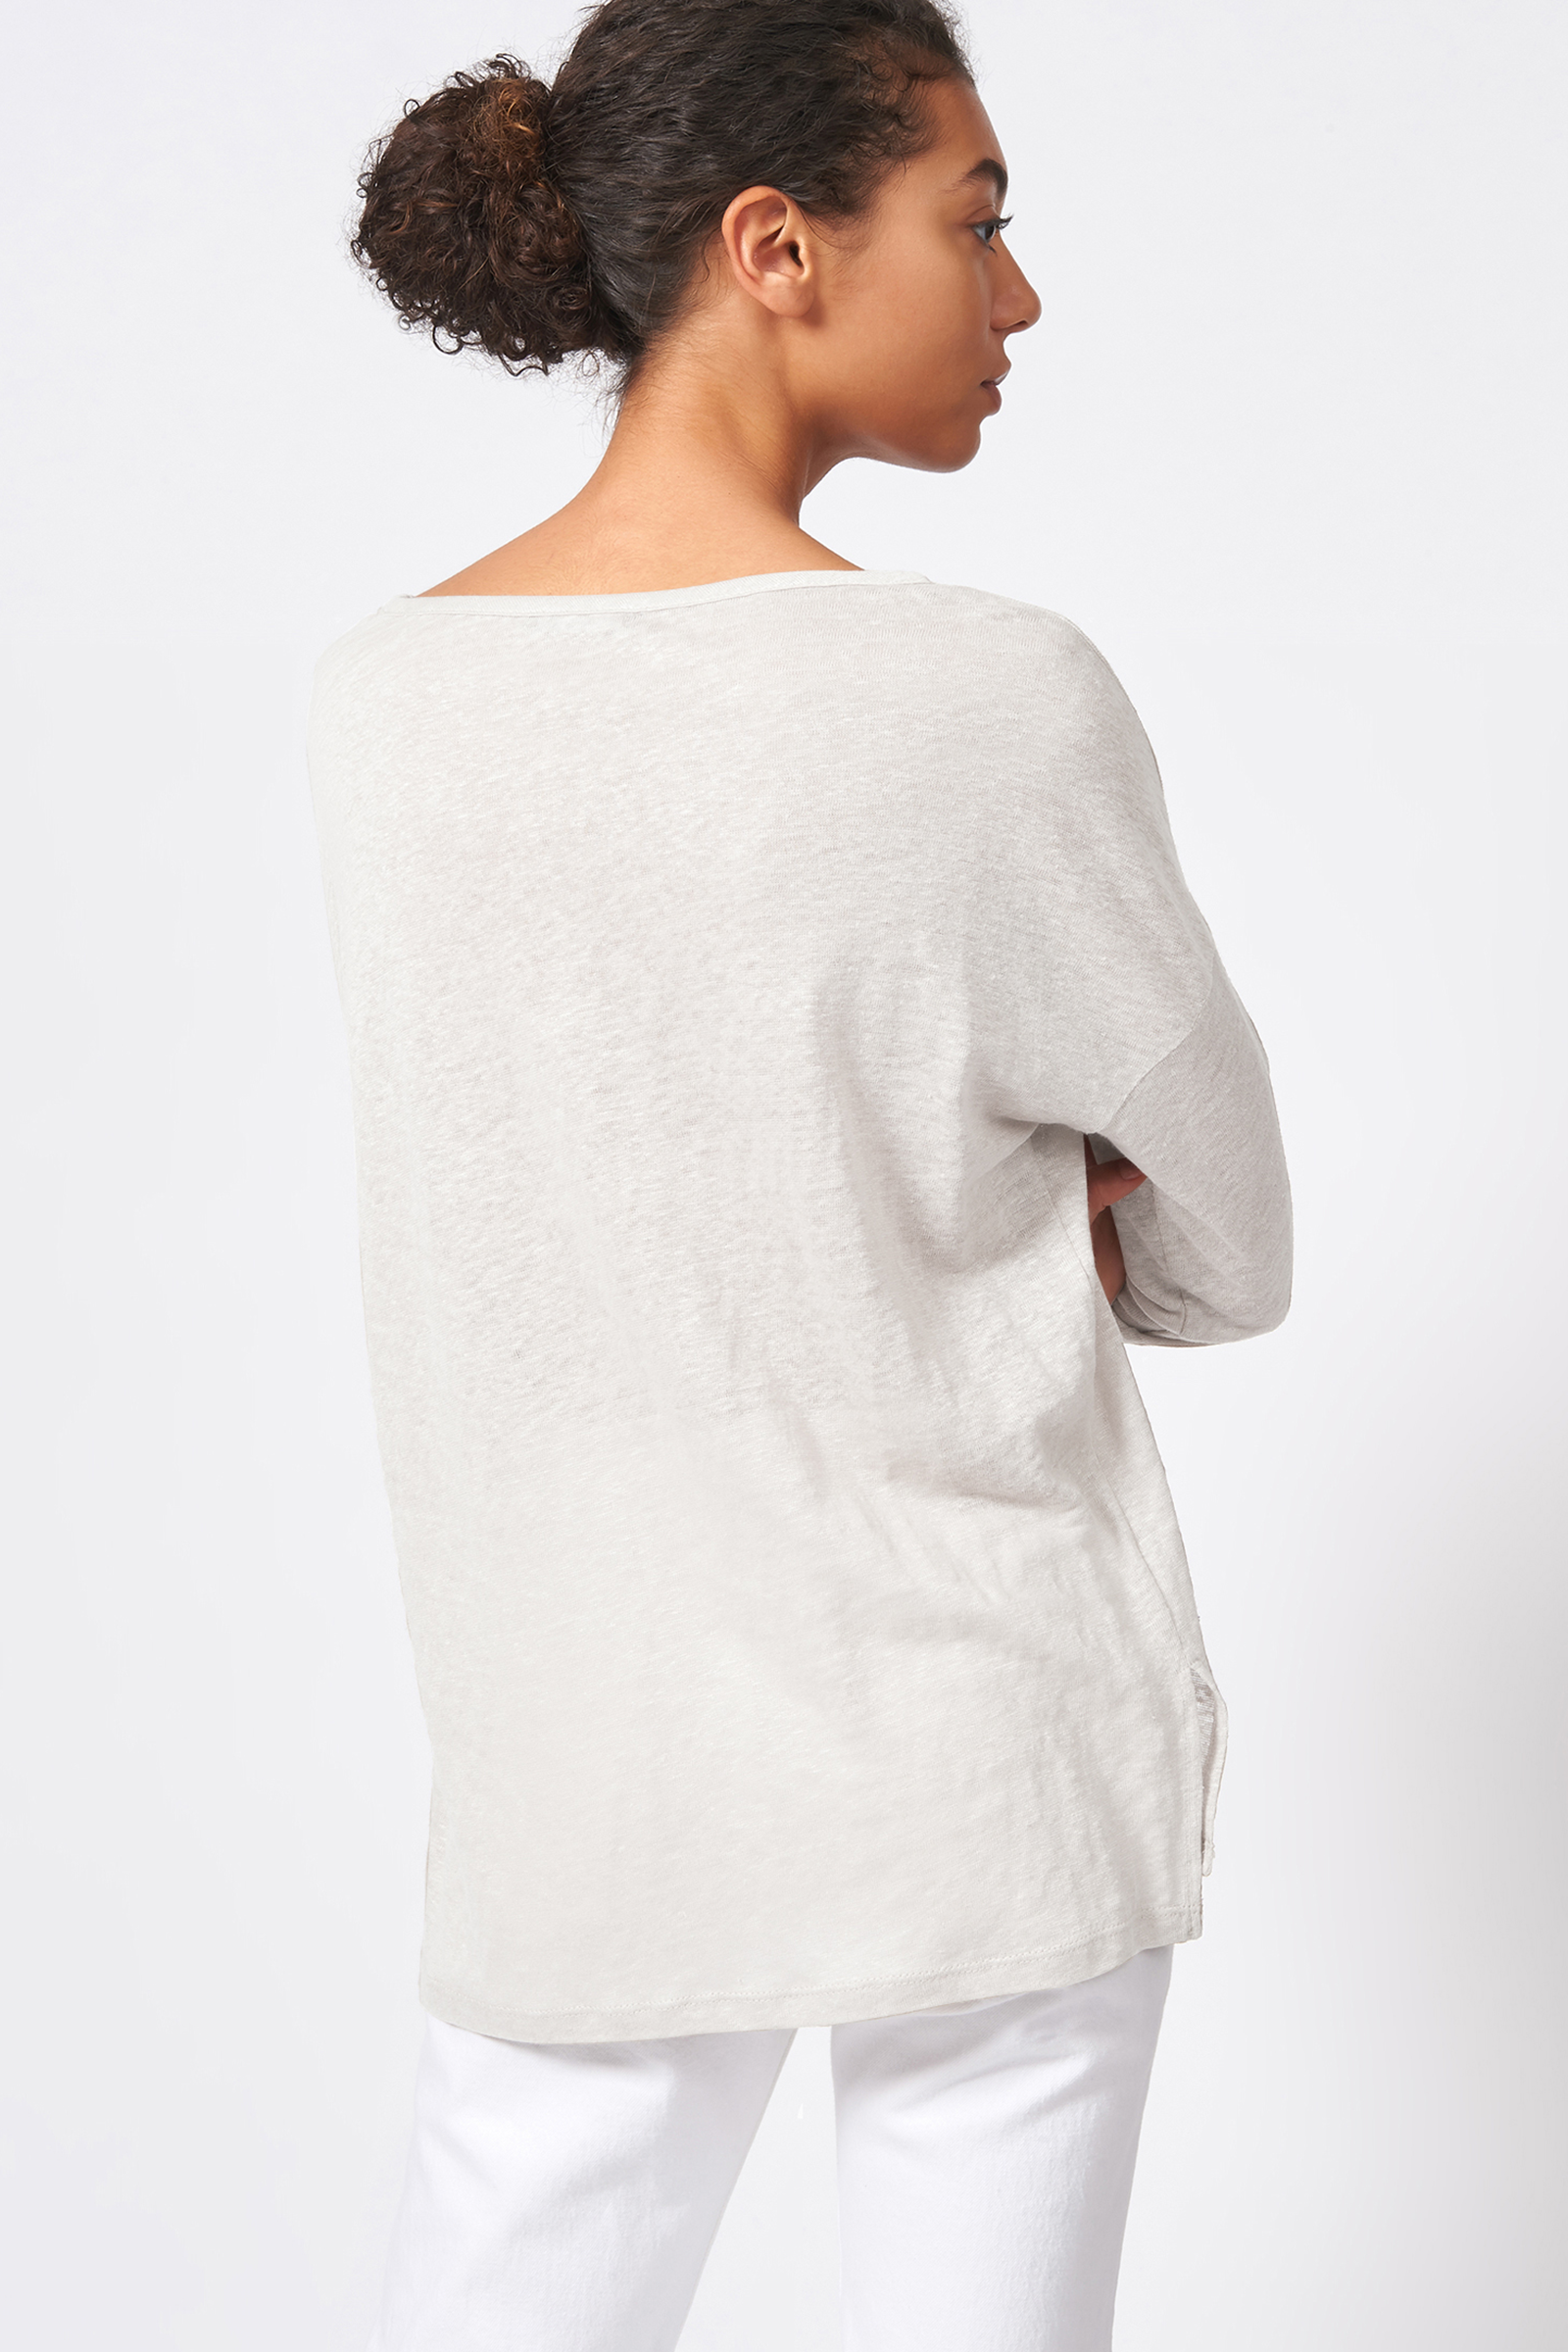 Kal Rieman Boat Neck Box Tee in Natural on Model Front View